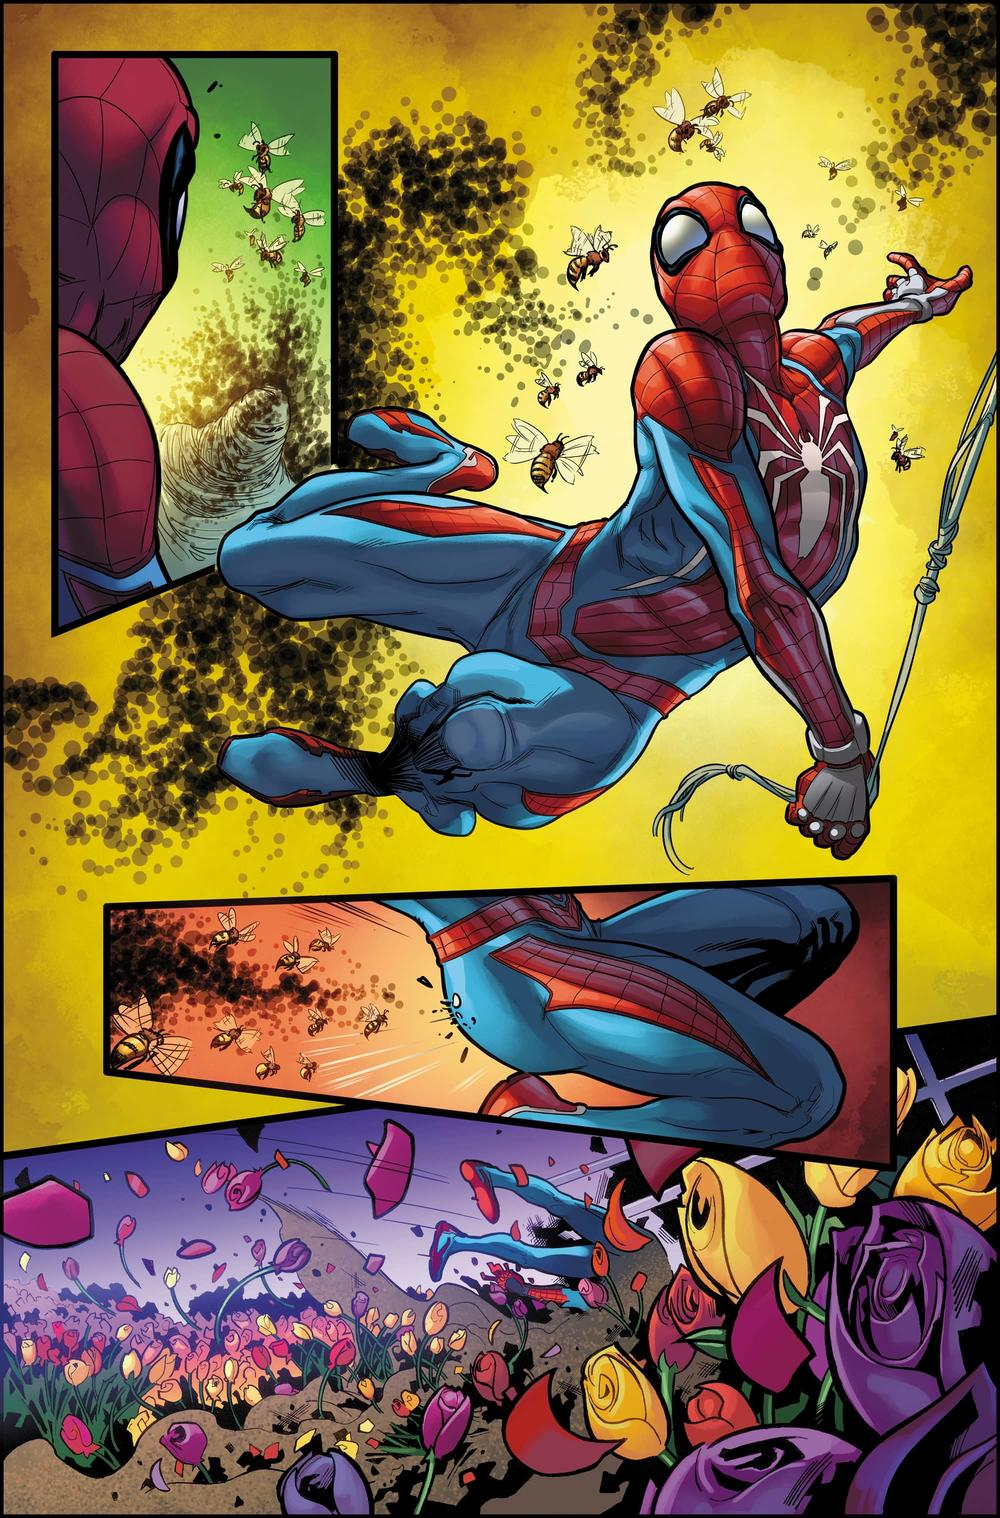 MARVEL'S SPIDER-MAN: VELOCITY #1 pencils by Emilio Laiso with colors by Rachelle Rosenberg